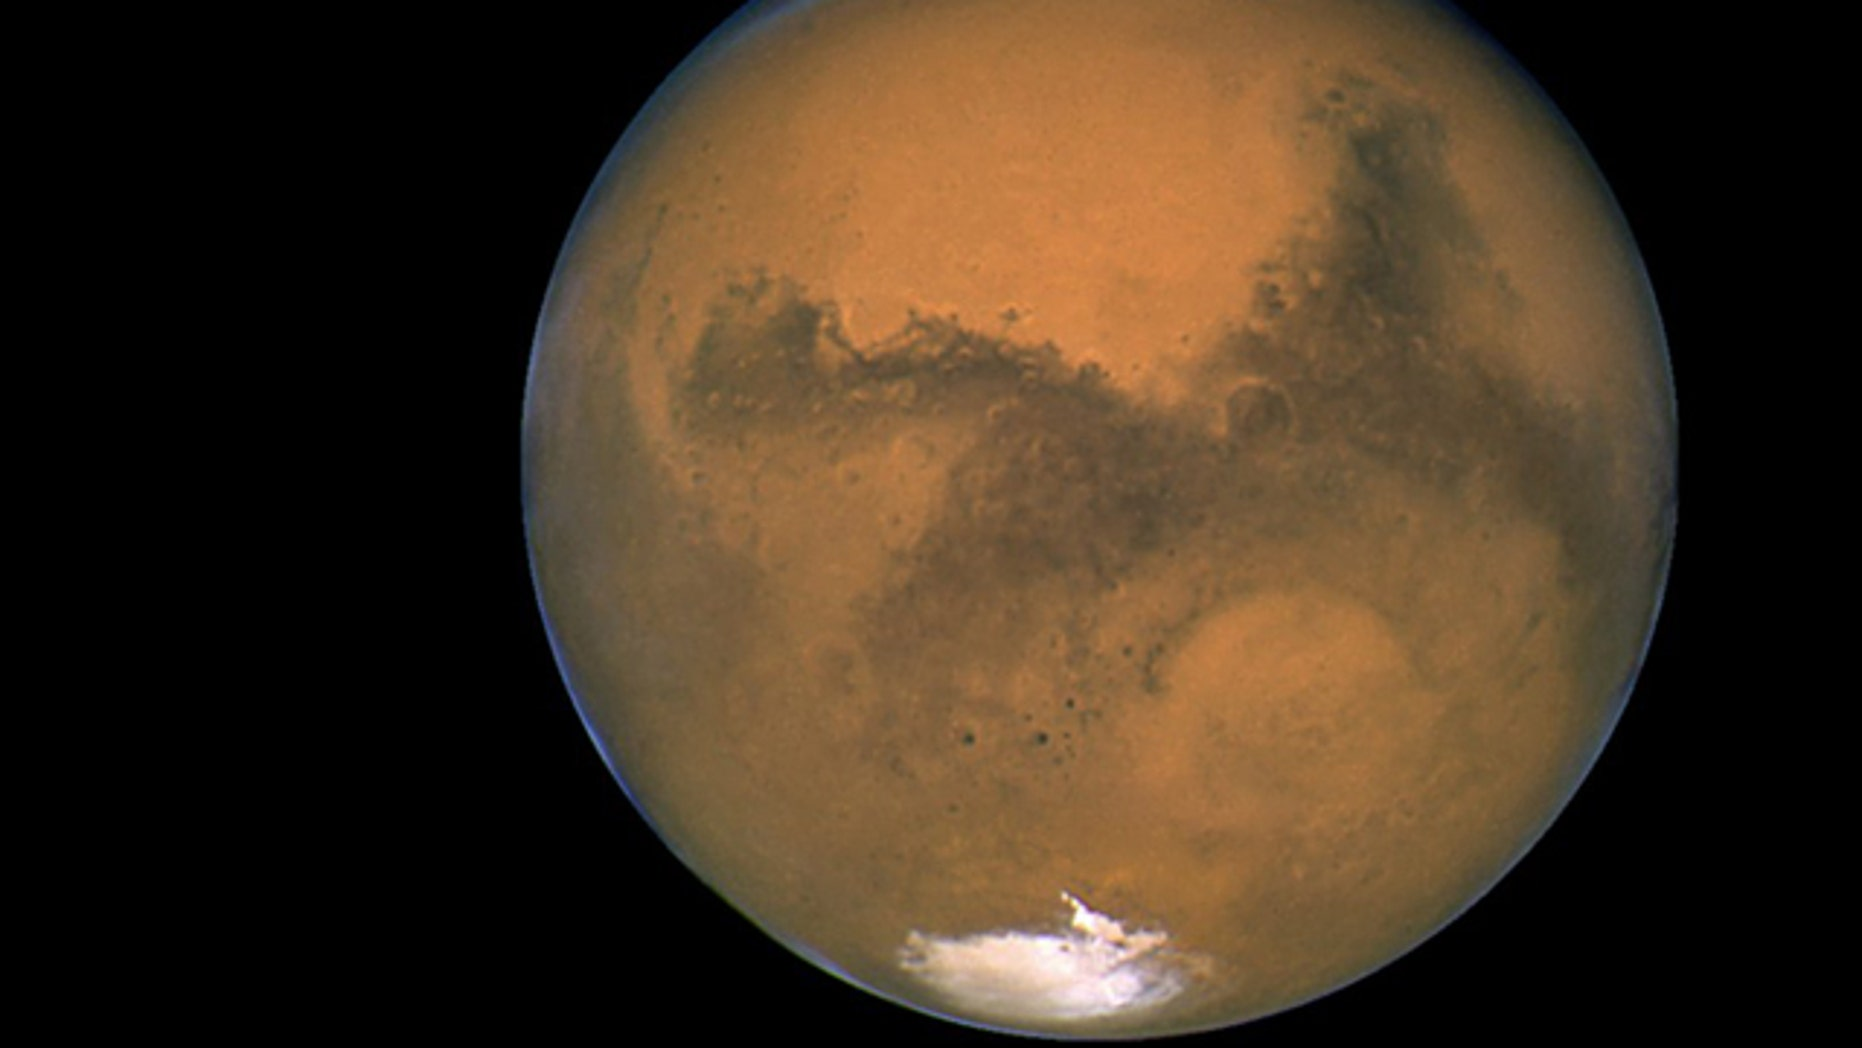 NASA's Hubble Space Telescope took this close-up of the red planet Mars when it was just 34,648,840 miles away, in 2003.